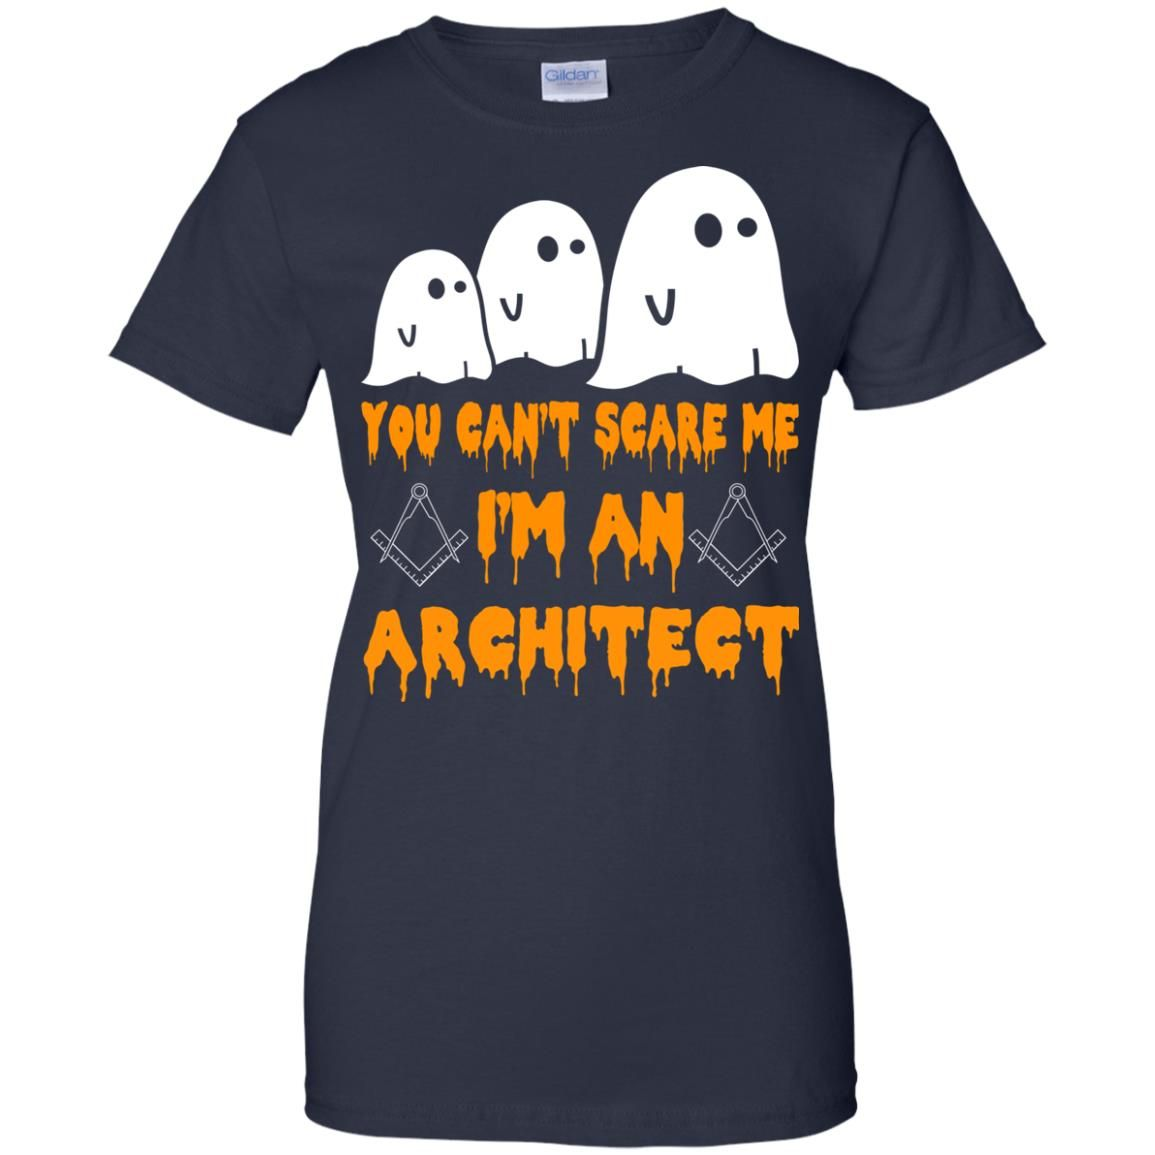 image 526 - You can't scare me I'm an Architect shirt, hoodie, tank